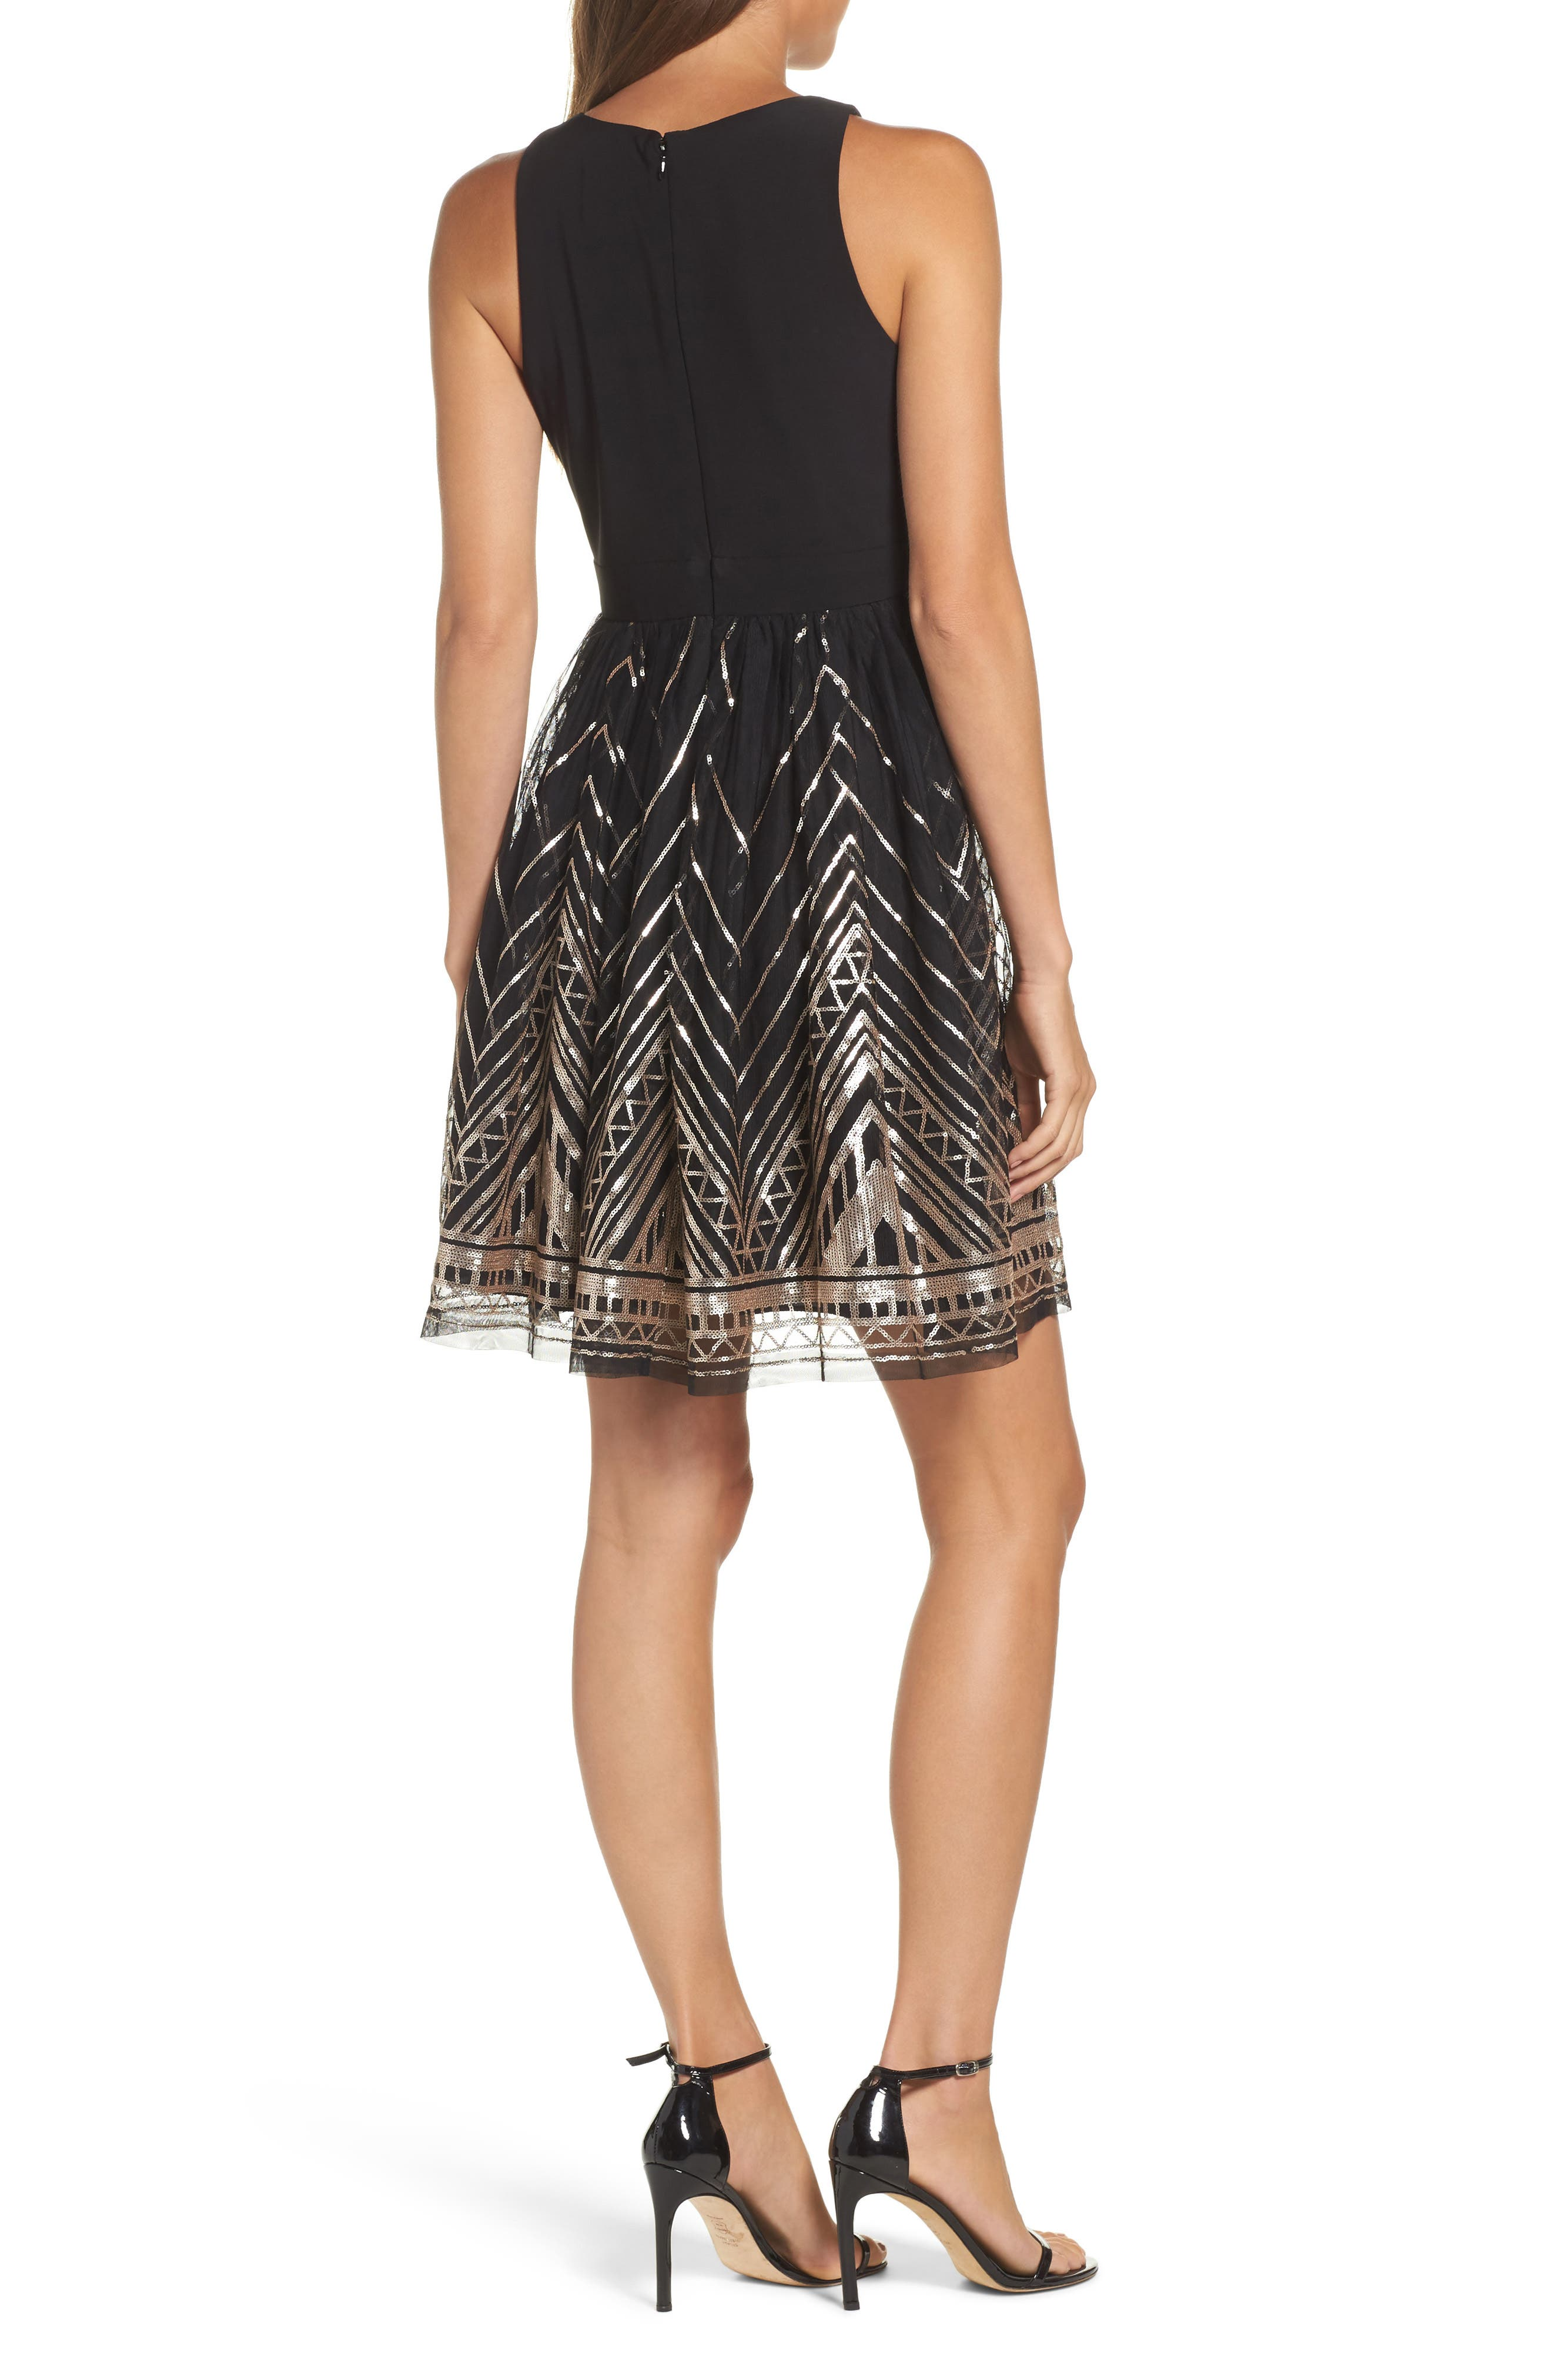 VINCE CAMUTO, Sequin Fit & Flare Cocktail Dress, Alternate thumbnail 2, color, BLACK/ GOLD